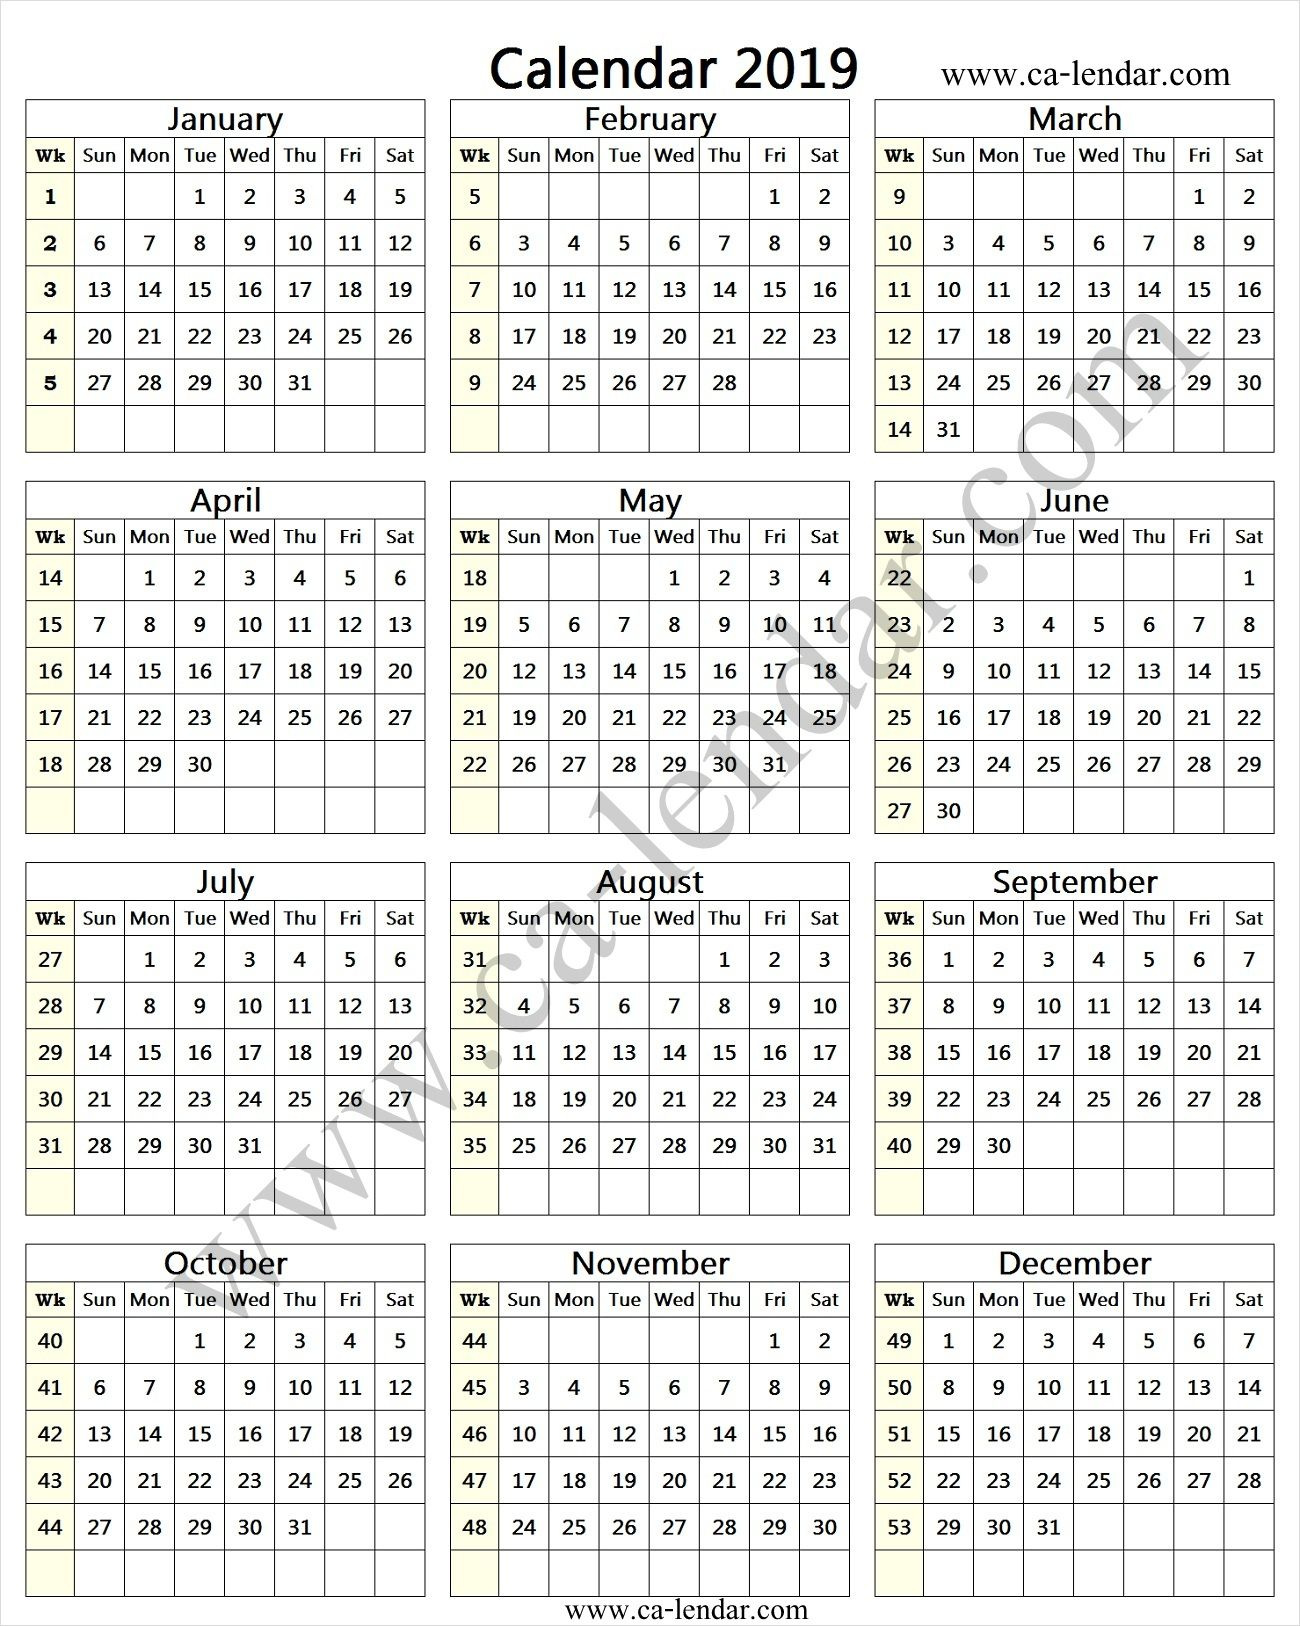 2019 Calendar With Week Numbers Printable 2019 Calendar Week Number